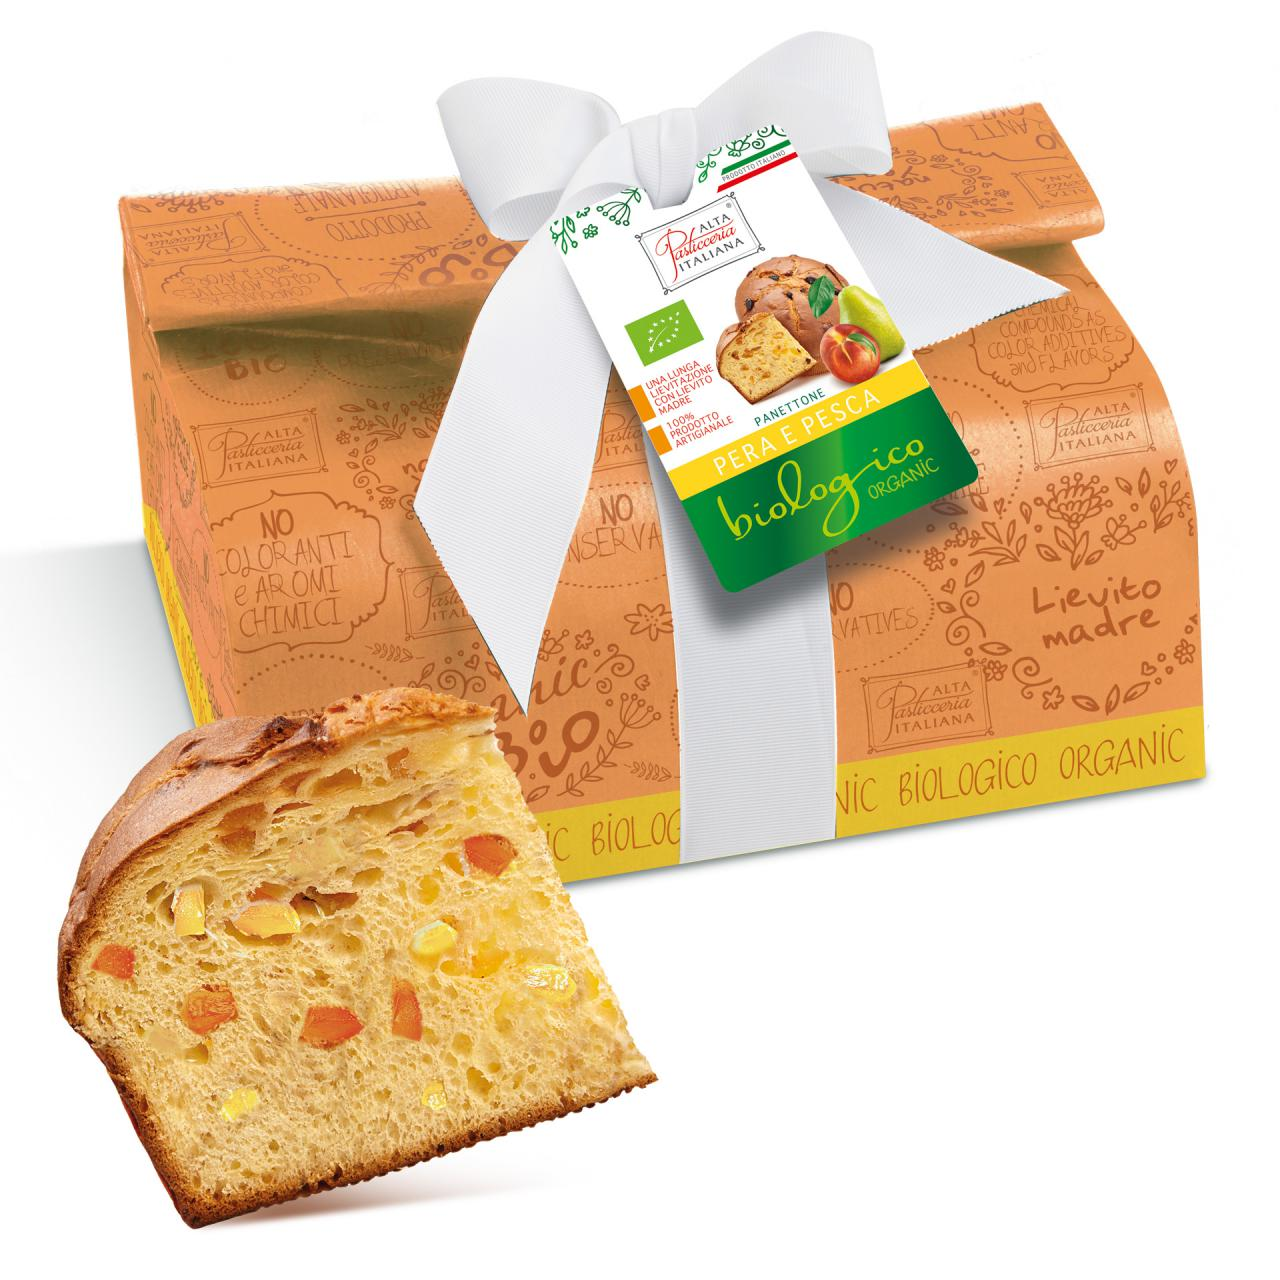 PEAR AND PEACH ORGANIC PANETTONE